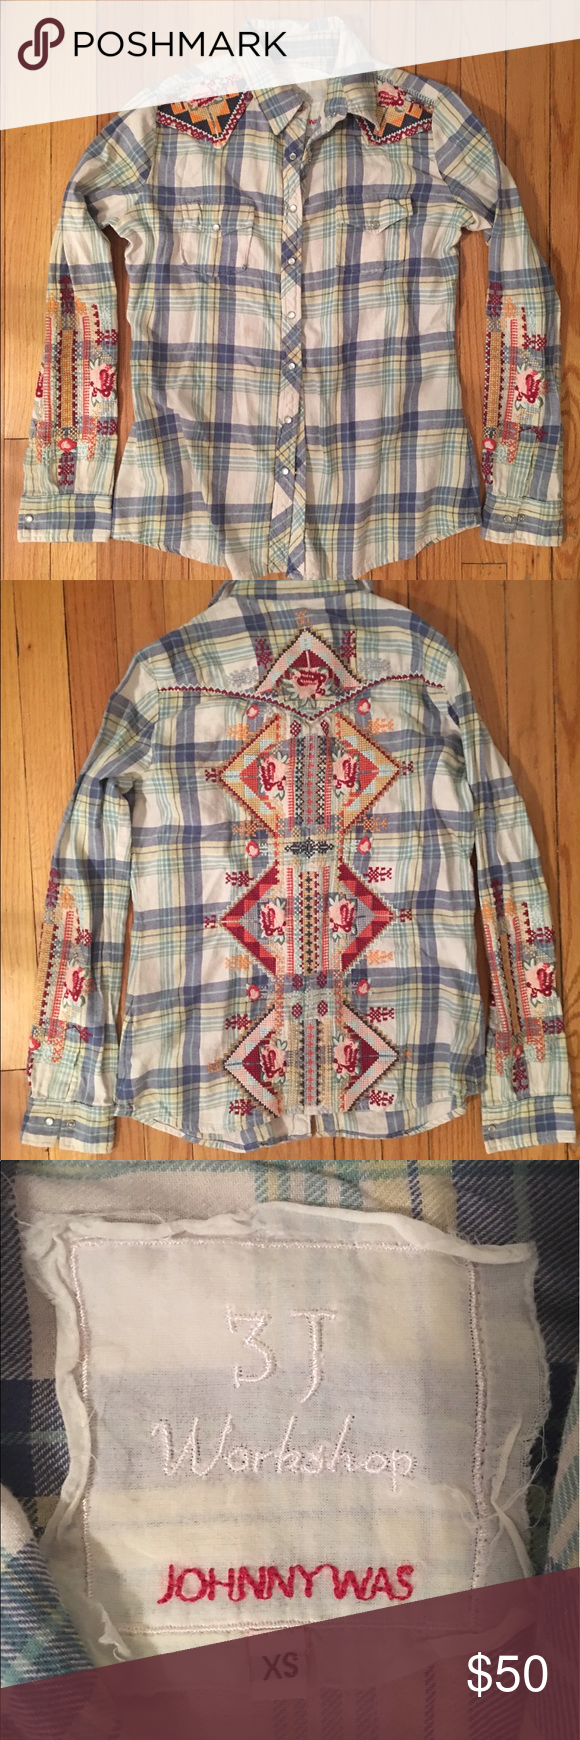 3J Workshop by Johnny Was embroidered plaid shirt Nearly new l, worn 1-2x Johnny Was Tops Button Down Shirts